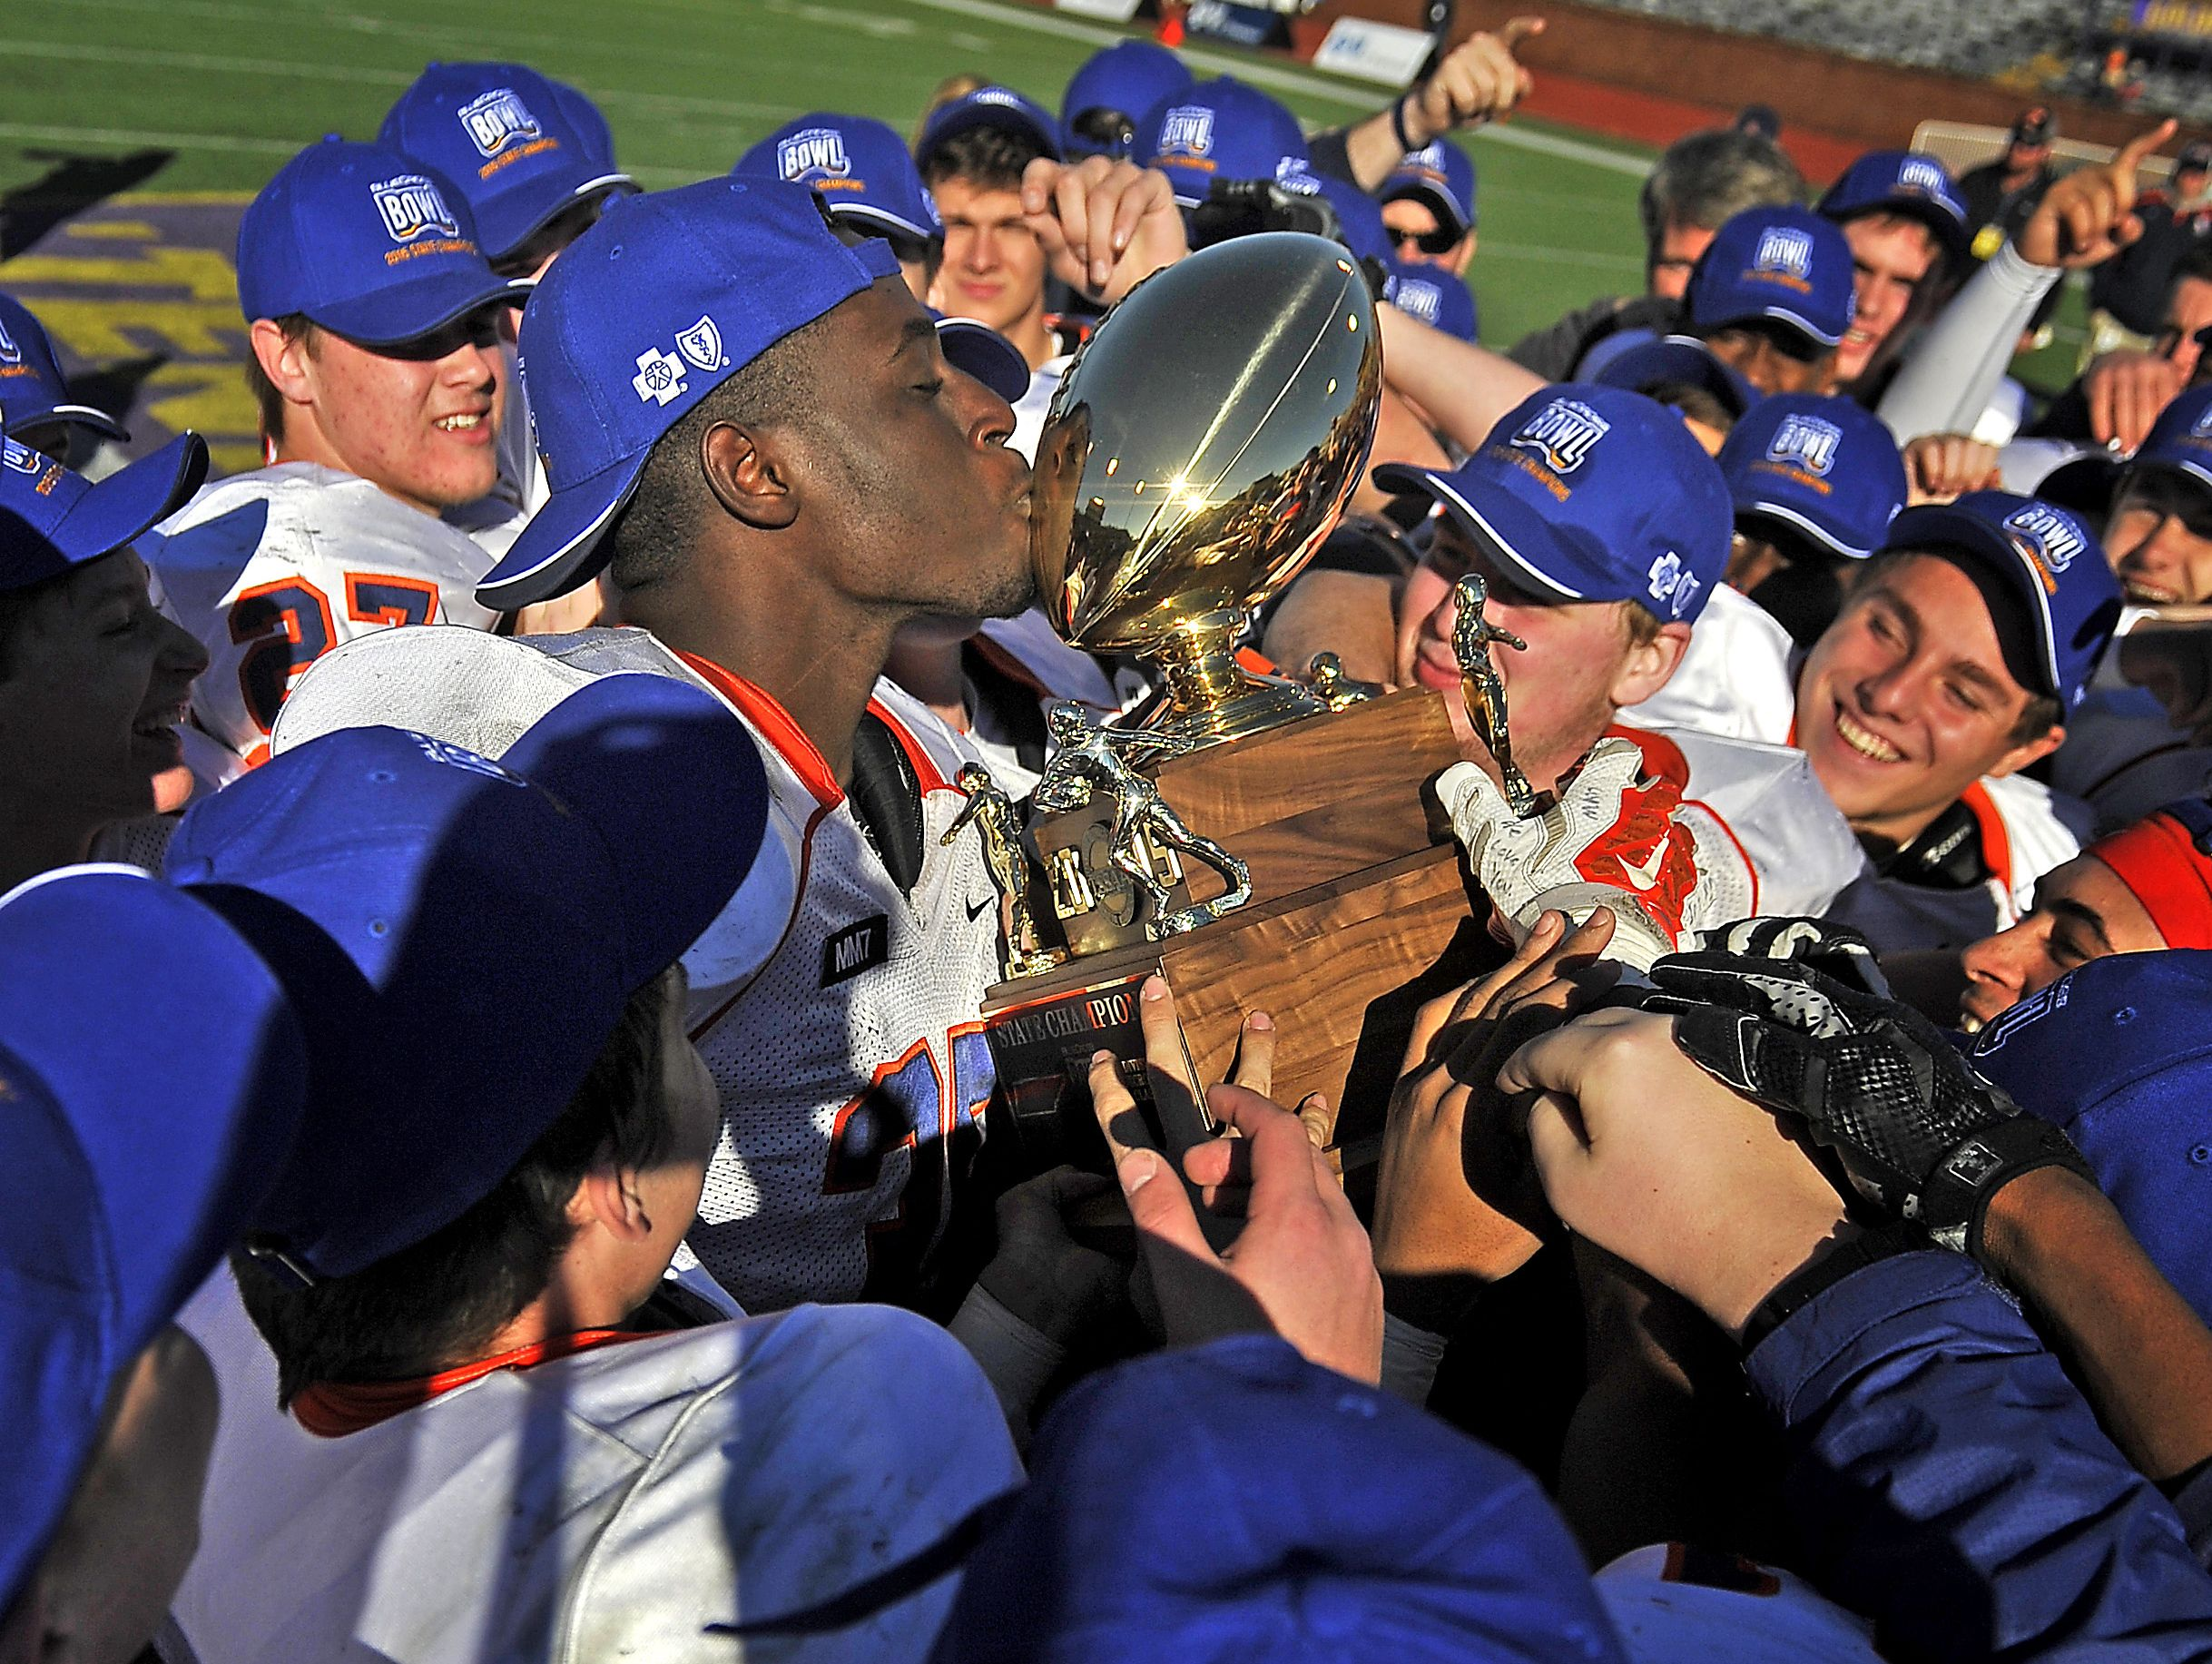 Daniel Bituli (35) kisses the trophy after Nashville Christian beat Greenback 42-14 in the 1A title game, giving the school its first team championship of any kind.